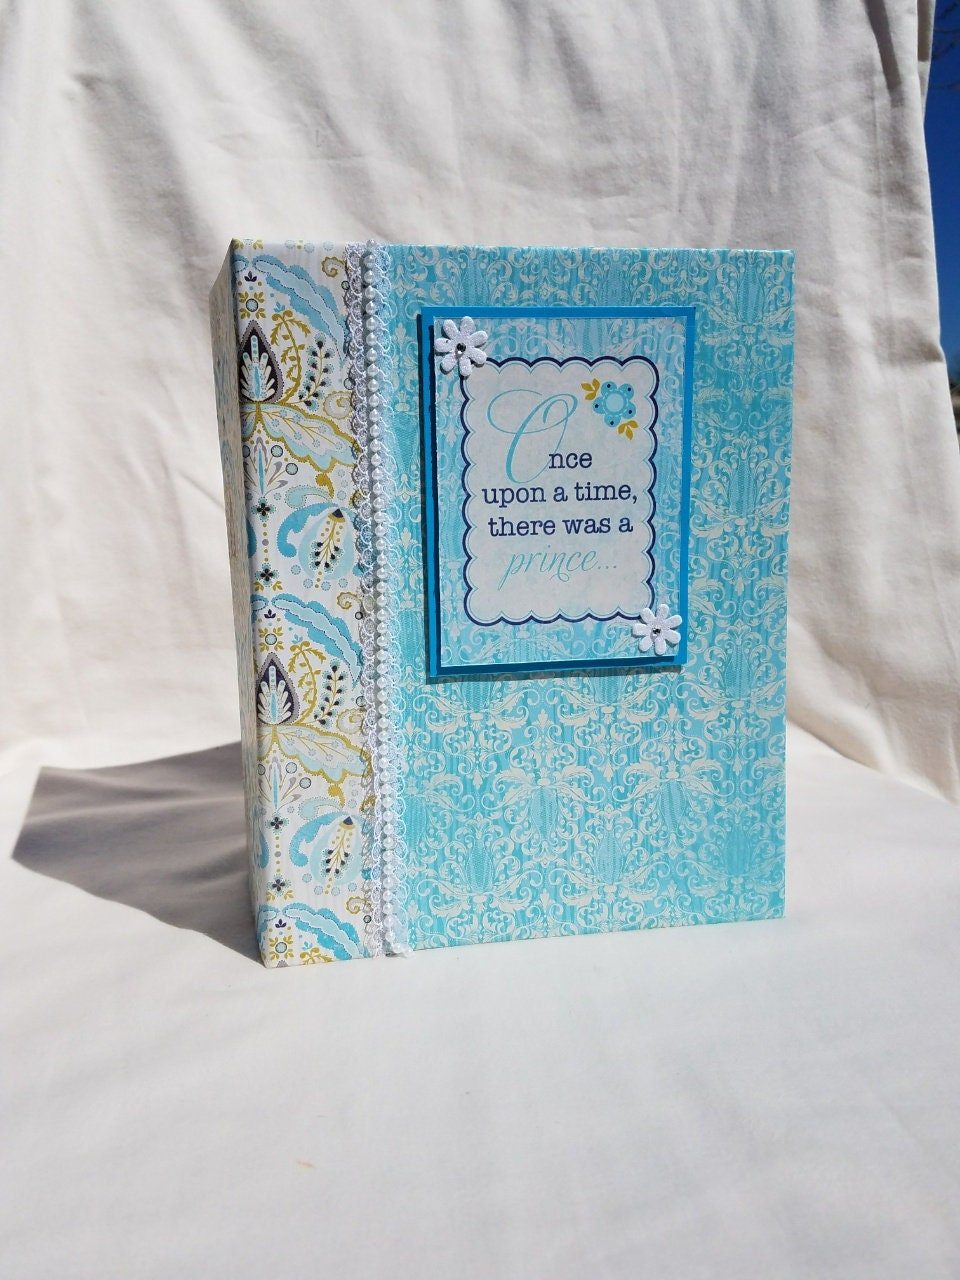 How to scrapbook baby book - Sold By Scrappindaily